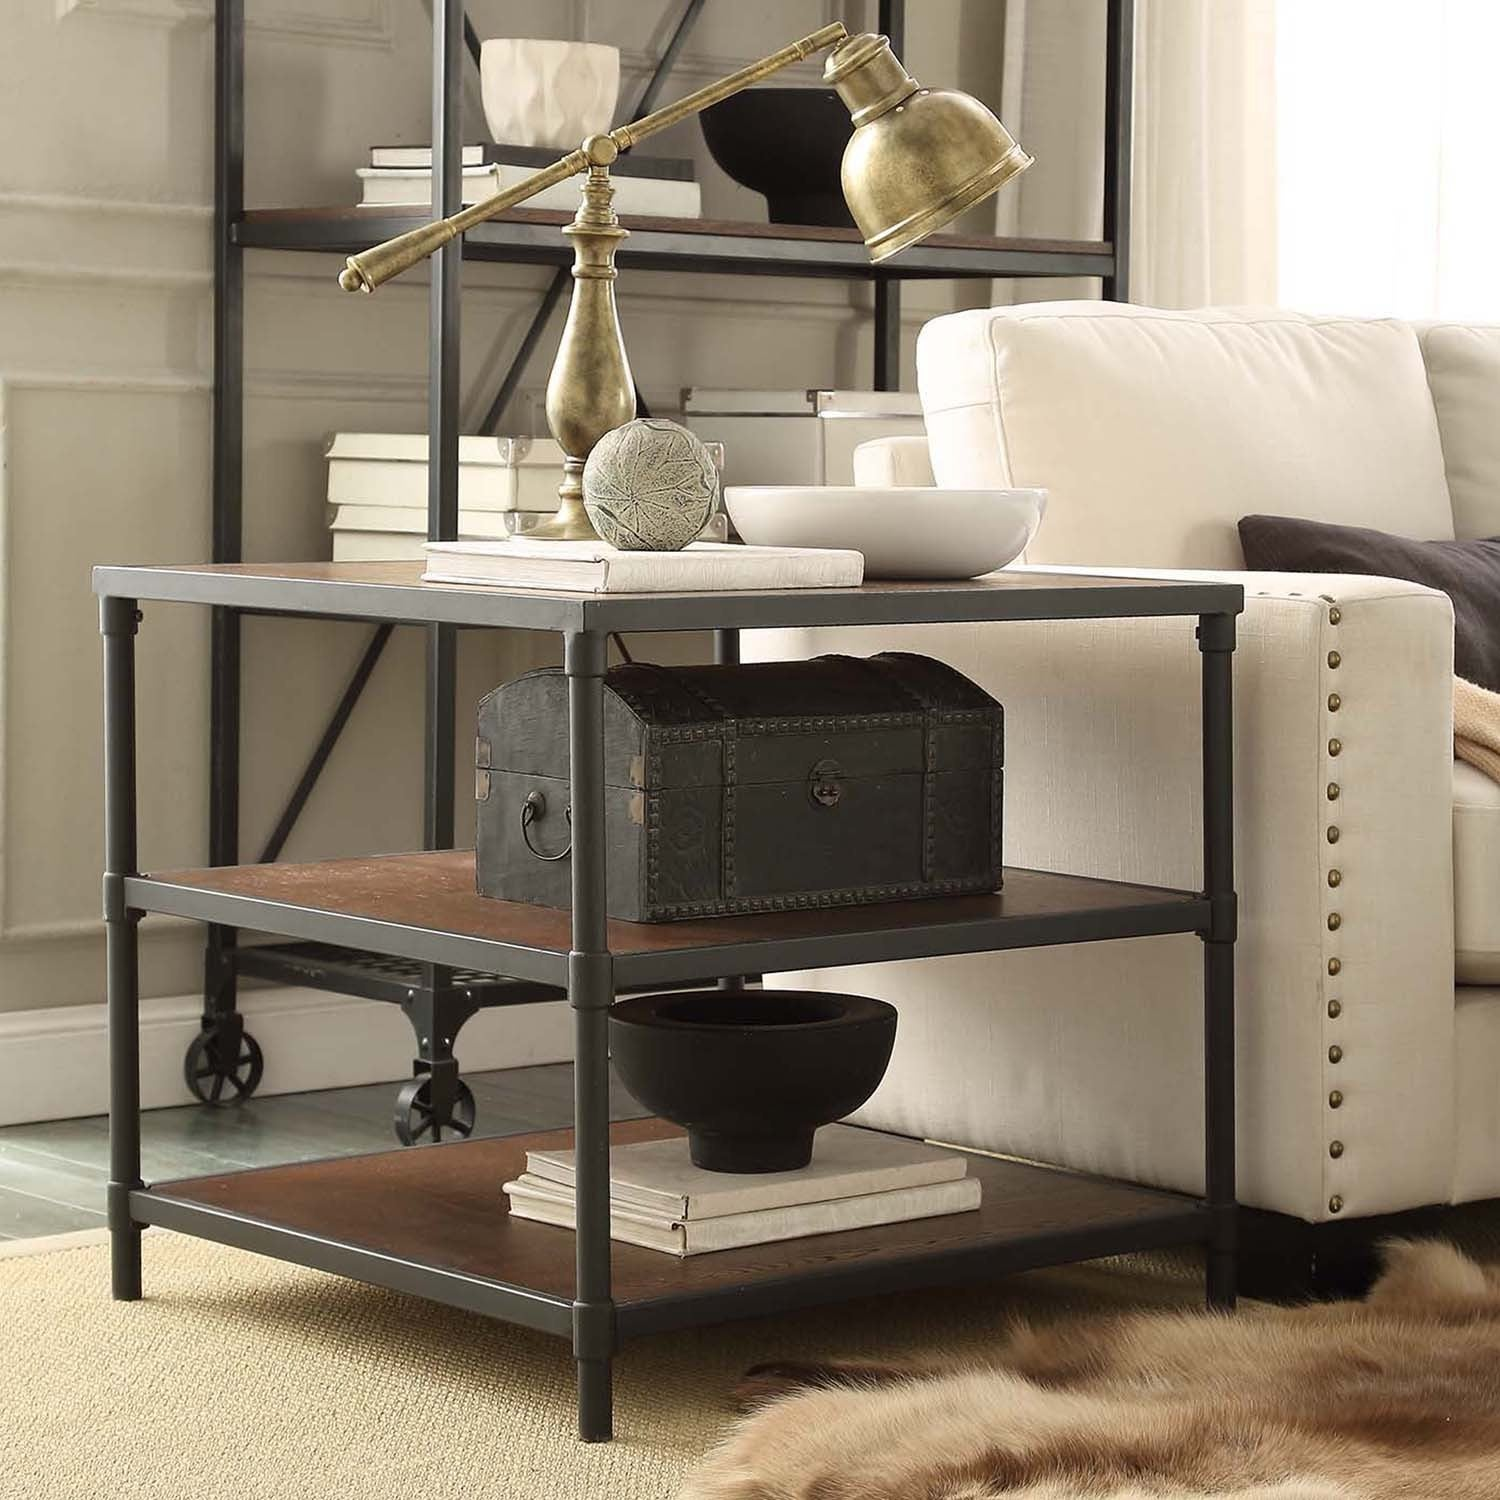 Harrison Industrial Rustic Pipe Frame Accent End Table by iNSPIRE Q Classic  - Free Shipping Today - Overstock.com - 17126202